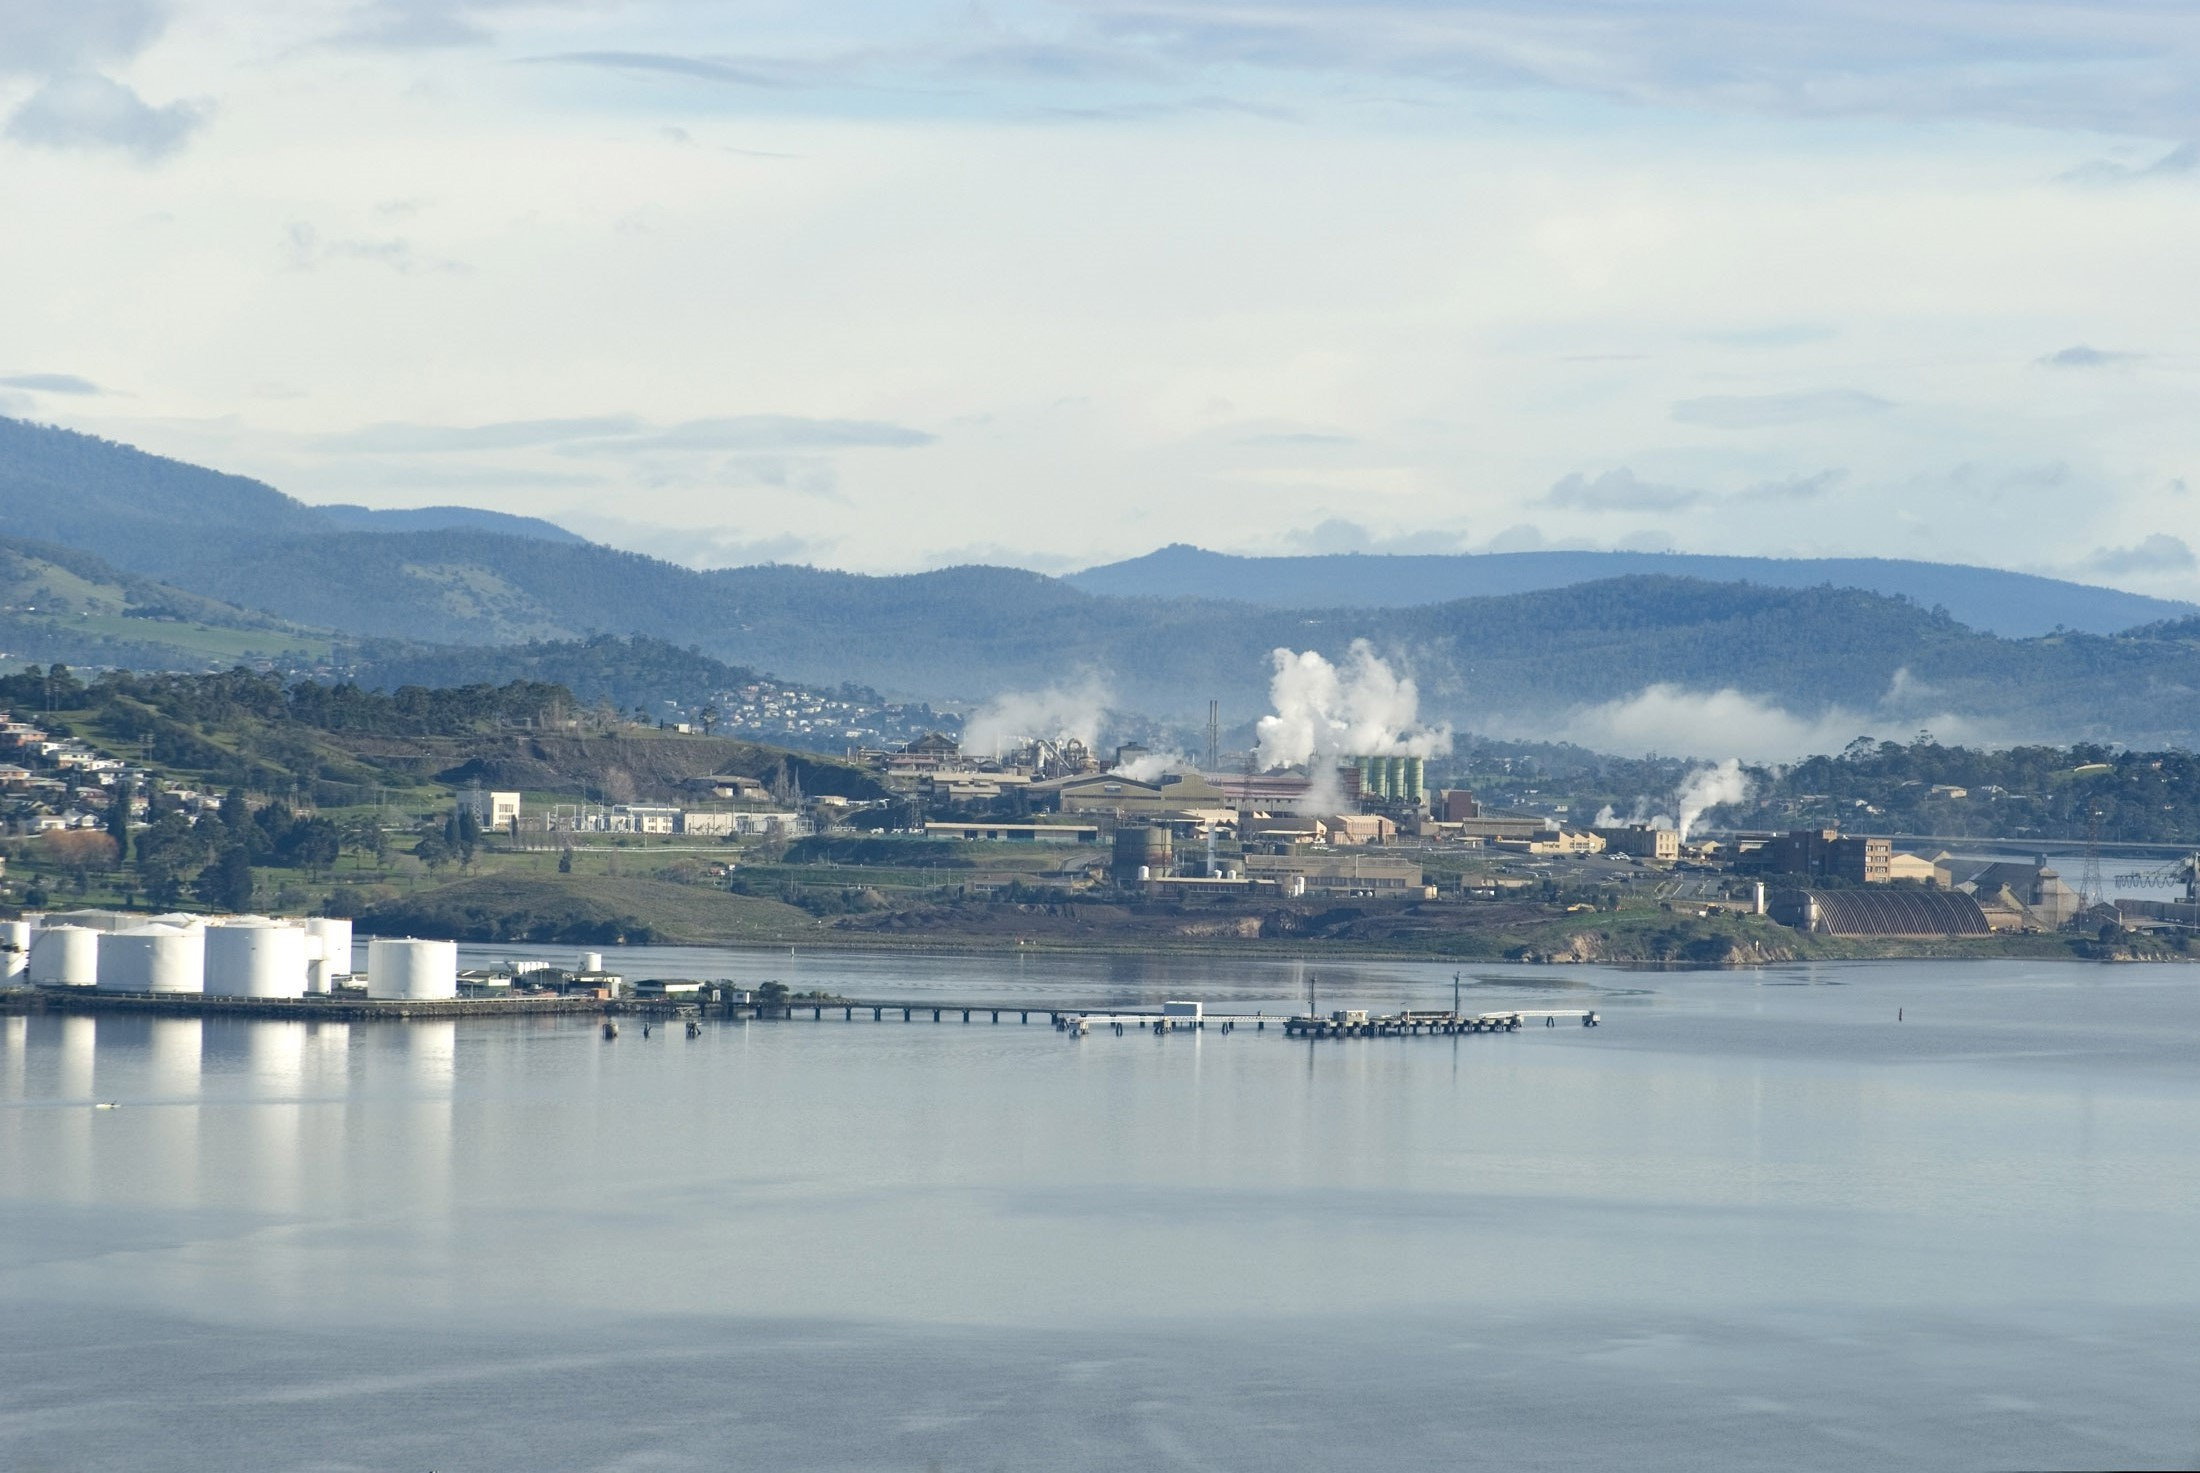 paper mills and heavy industry along the banks of the derwent river, tasmania